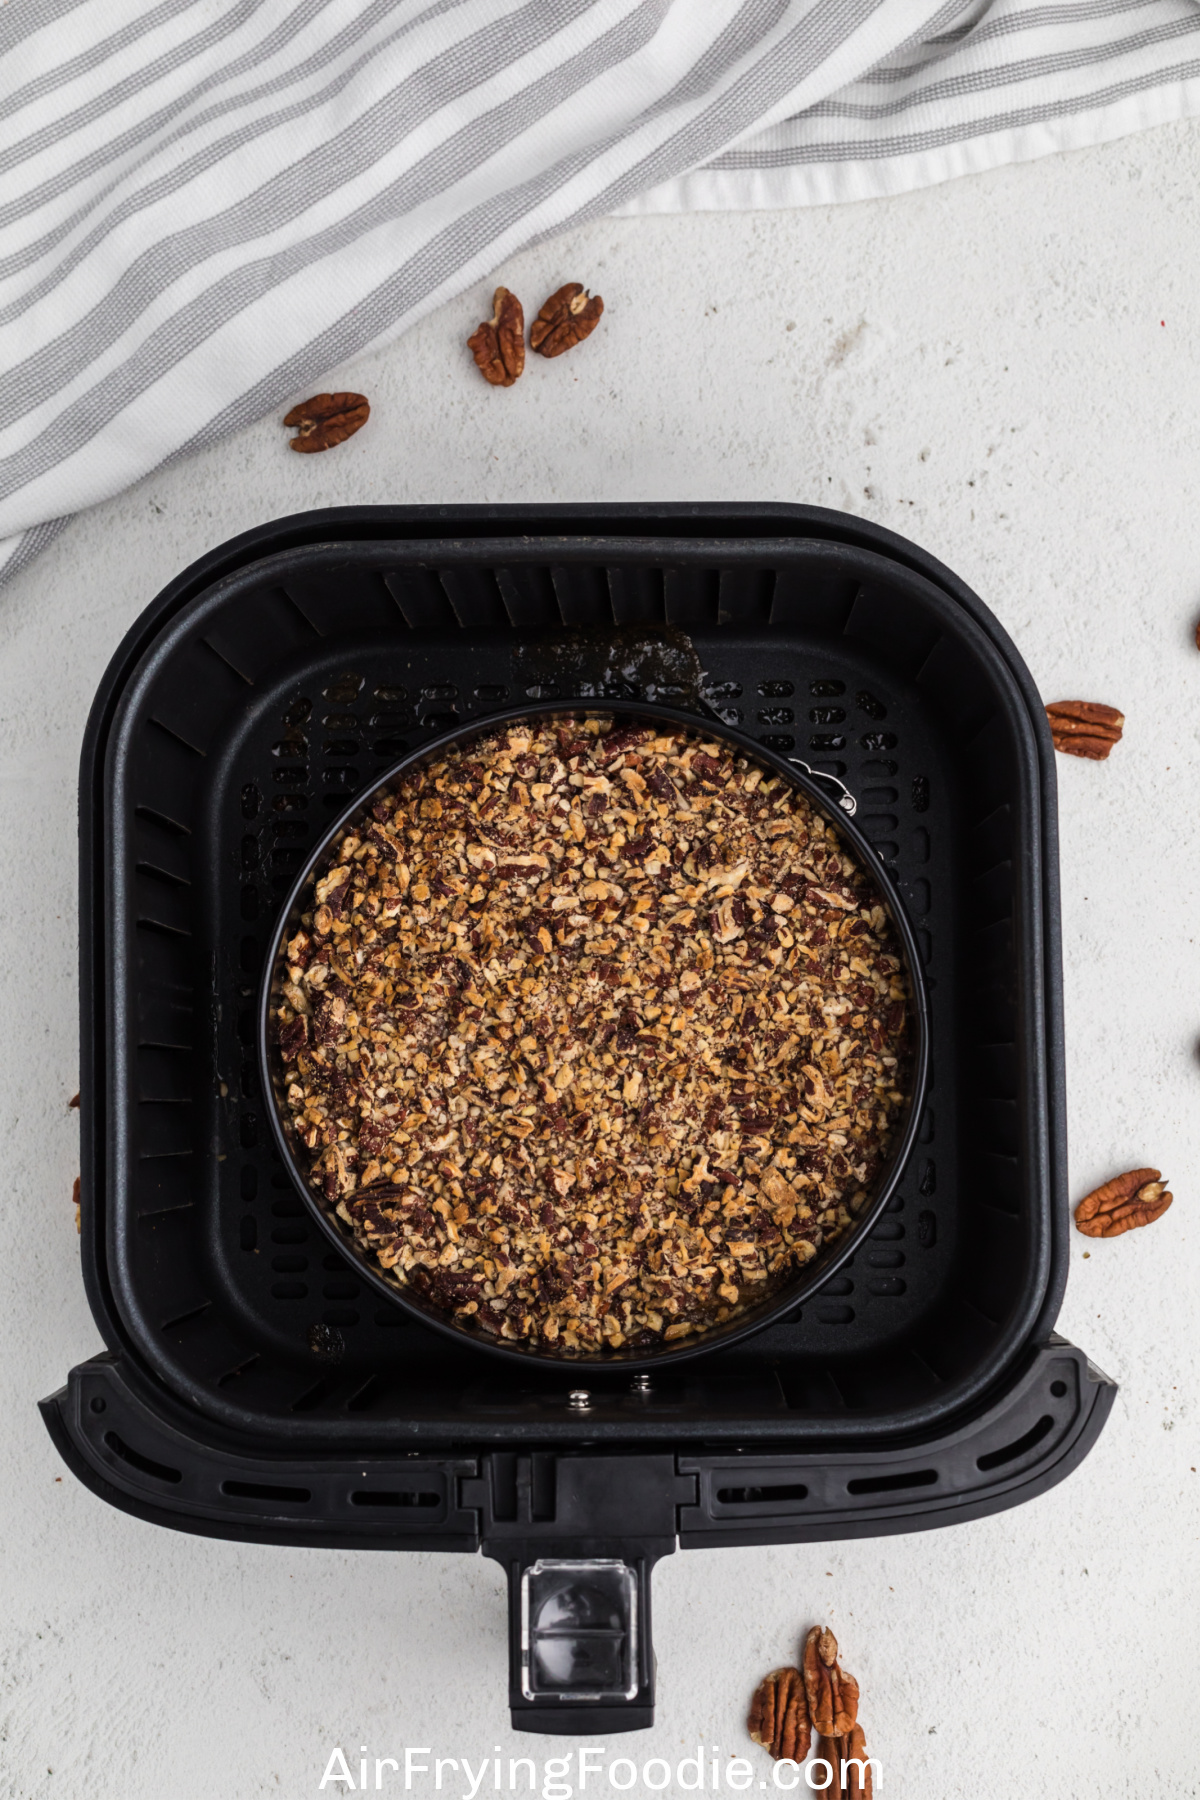 cooked sweet potato casserole in the air fryer basket